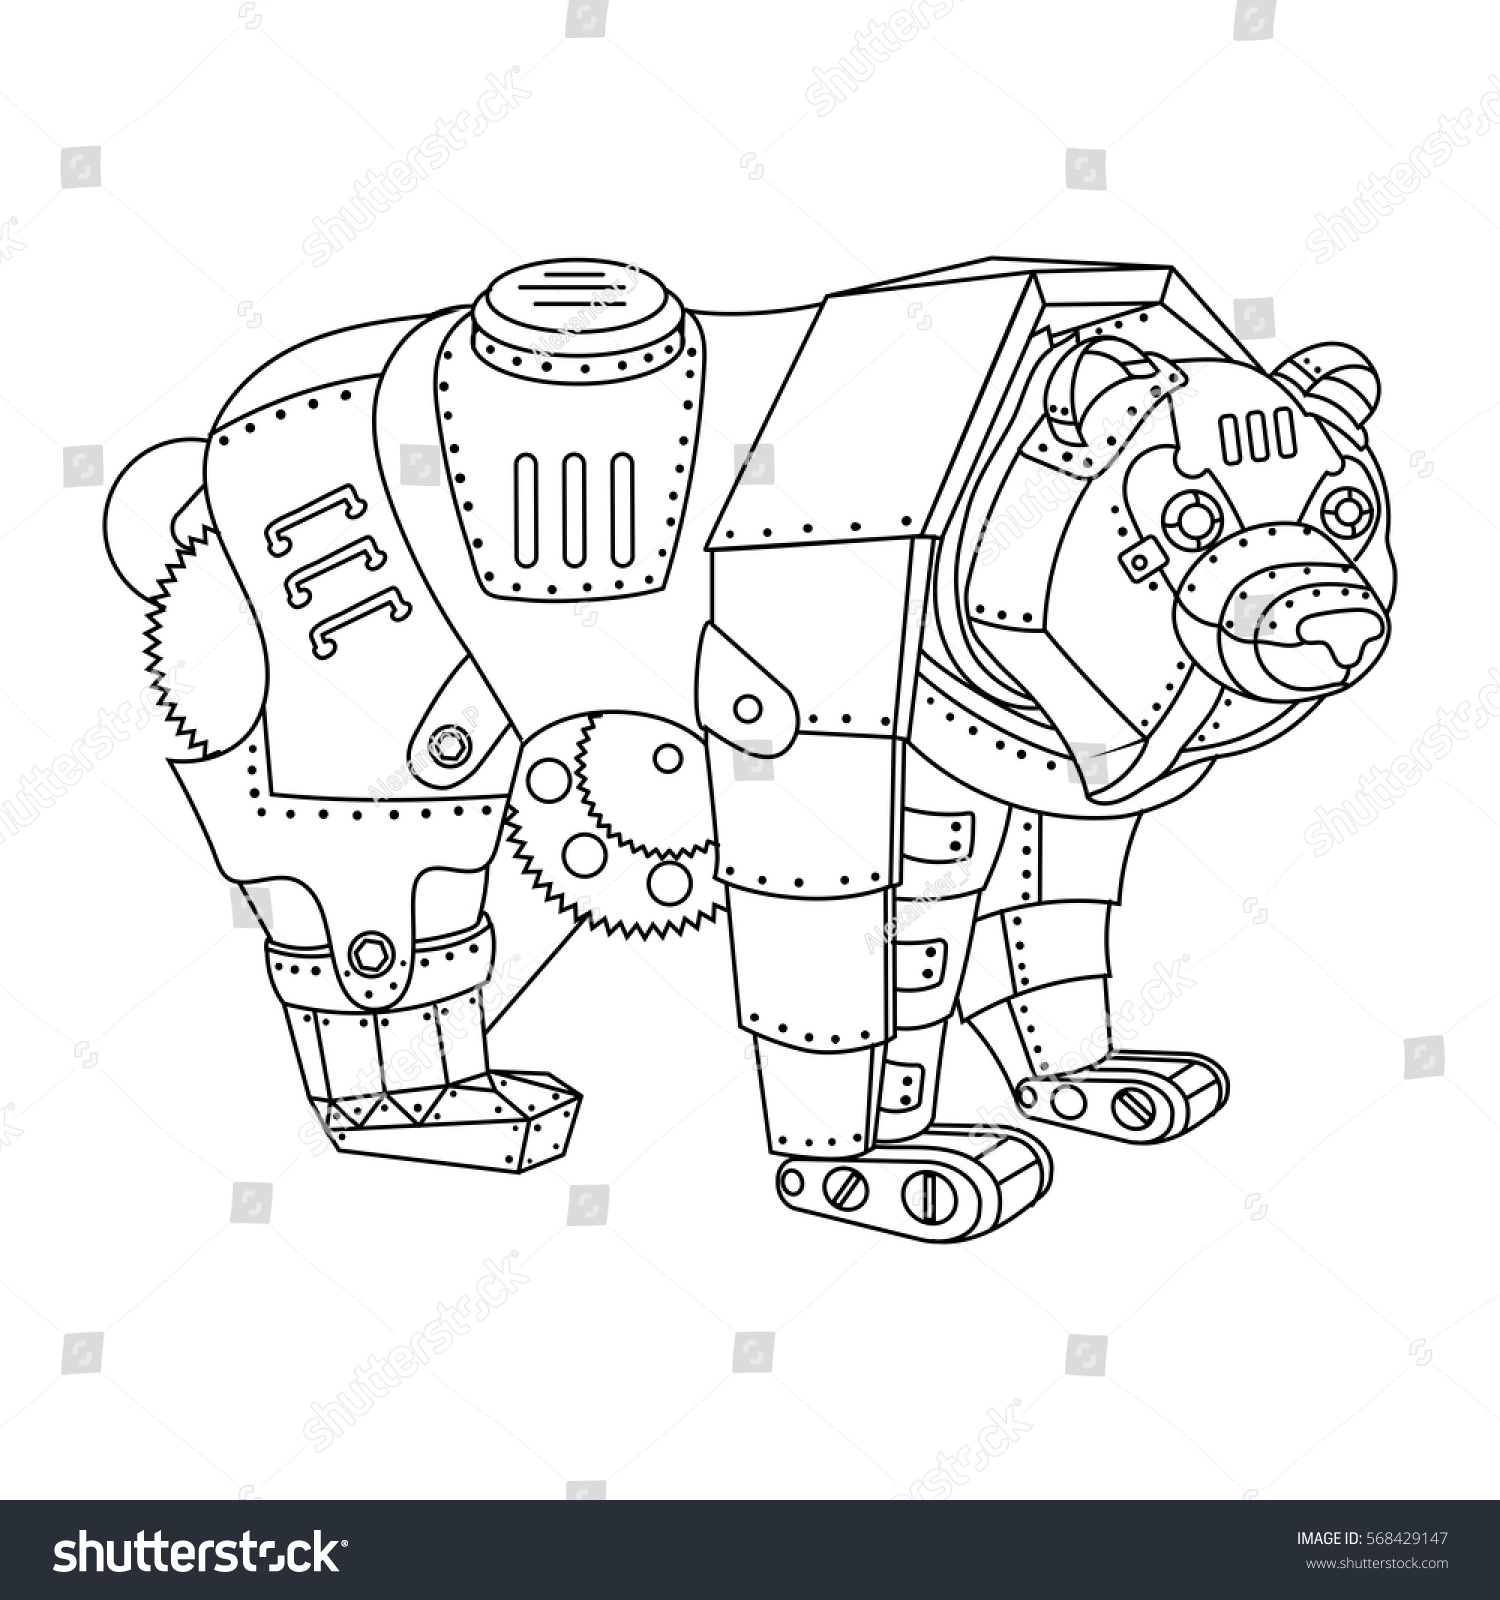 Steampunk Style Bear Mechanical Animal Coloring Book Vector Illustration